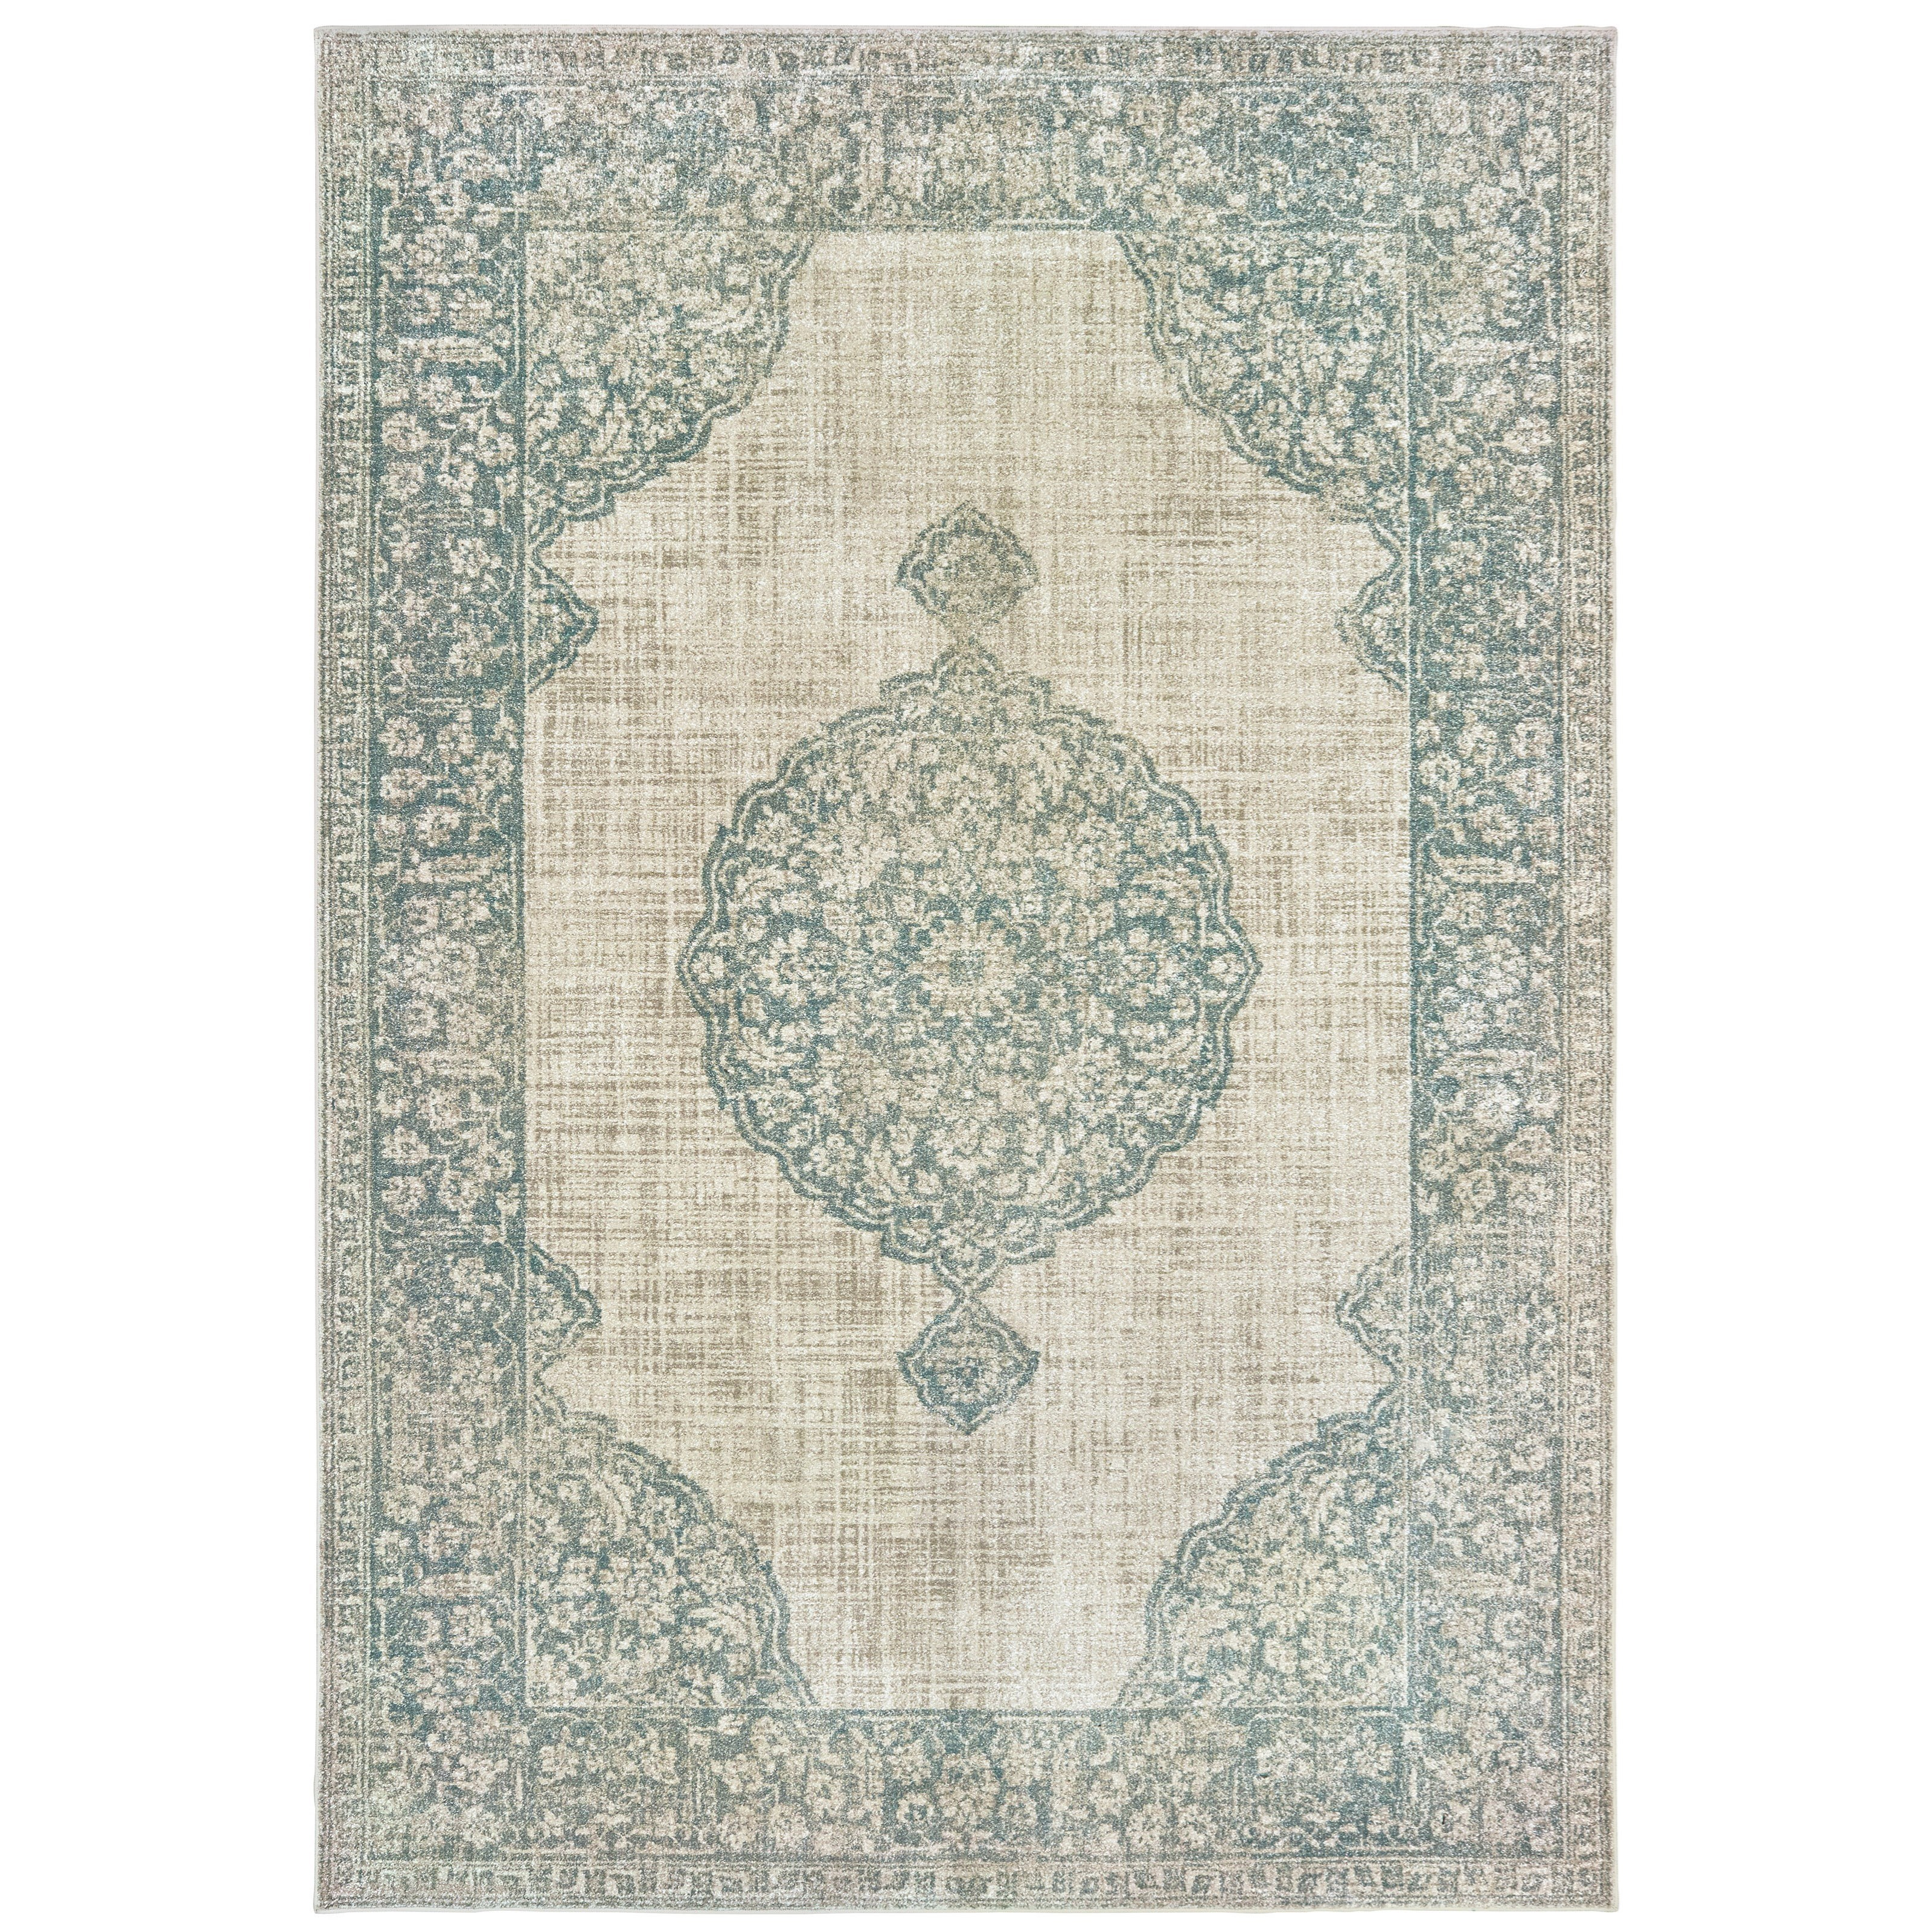 "Raleigh 9'10"" X 12'10"" Rectangle Rug by Oriental Weavers at Rooms for Less"